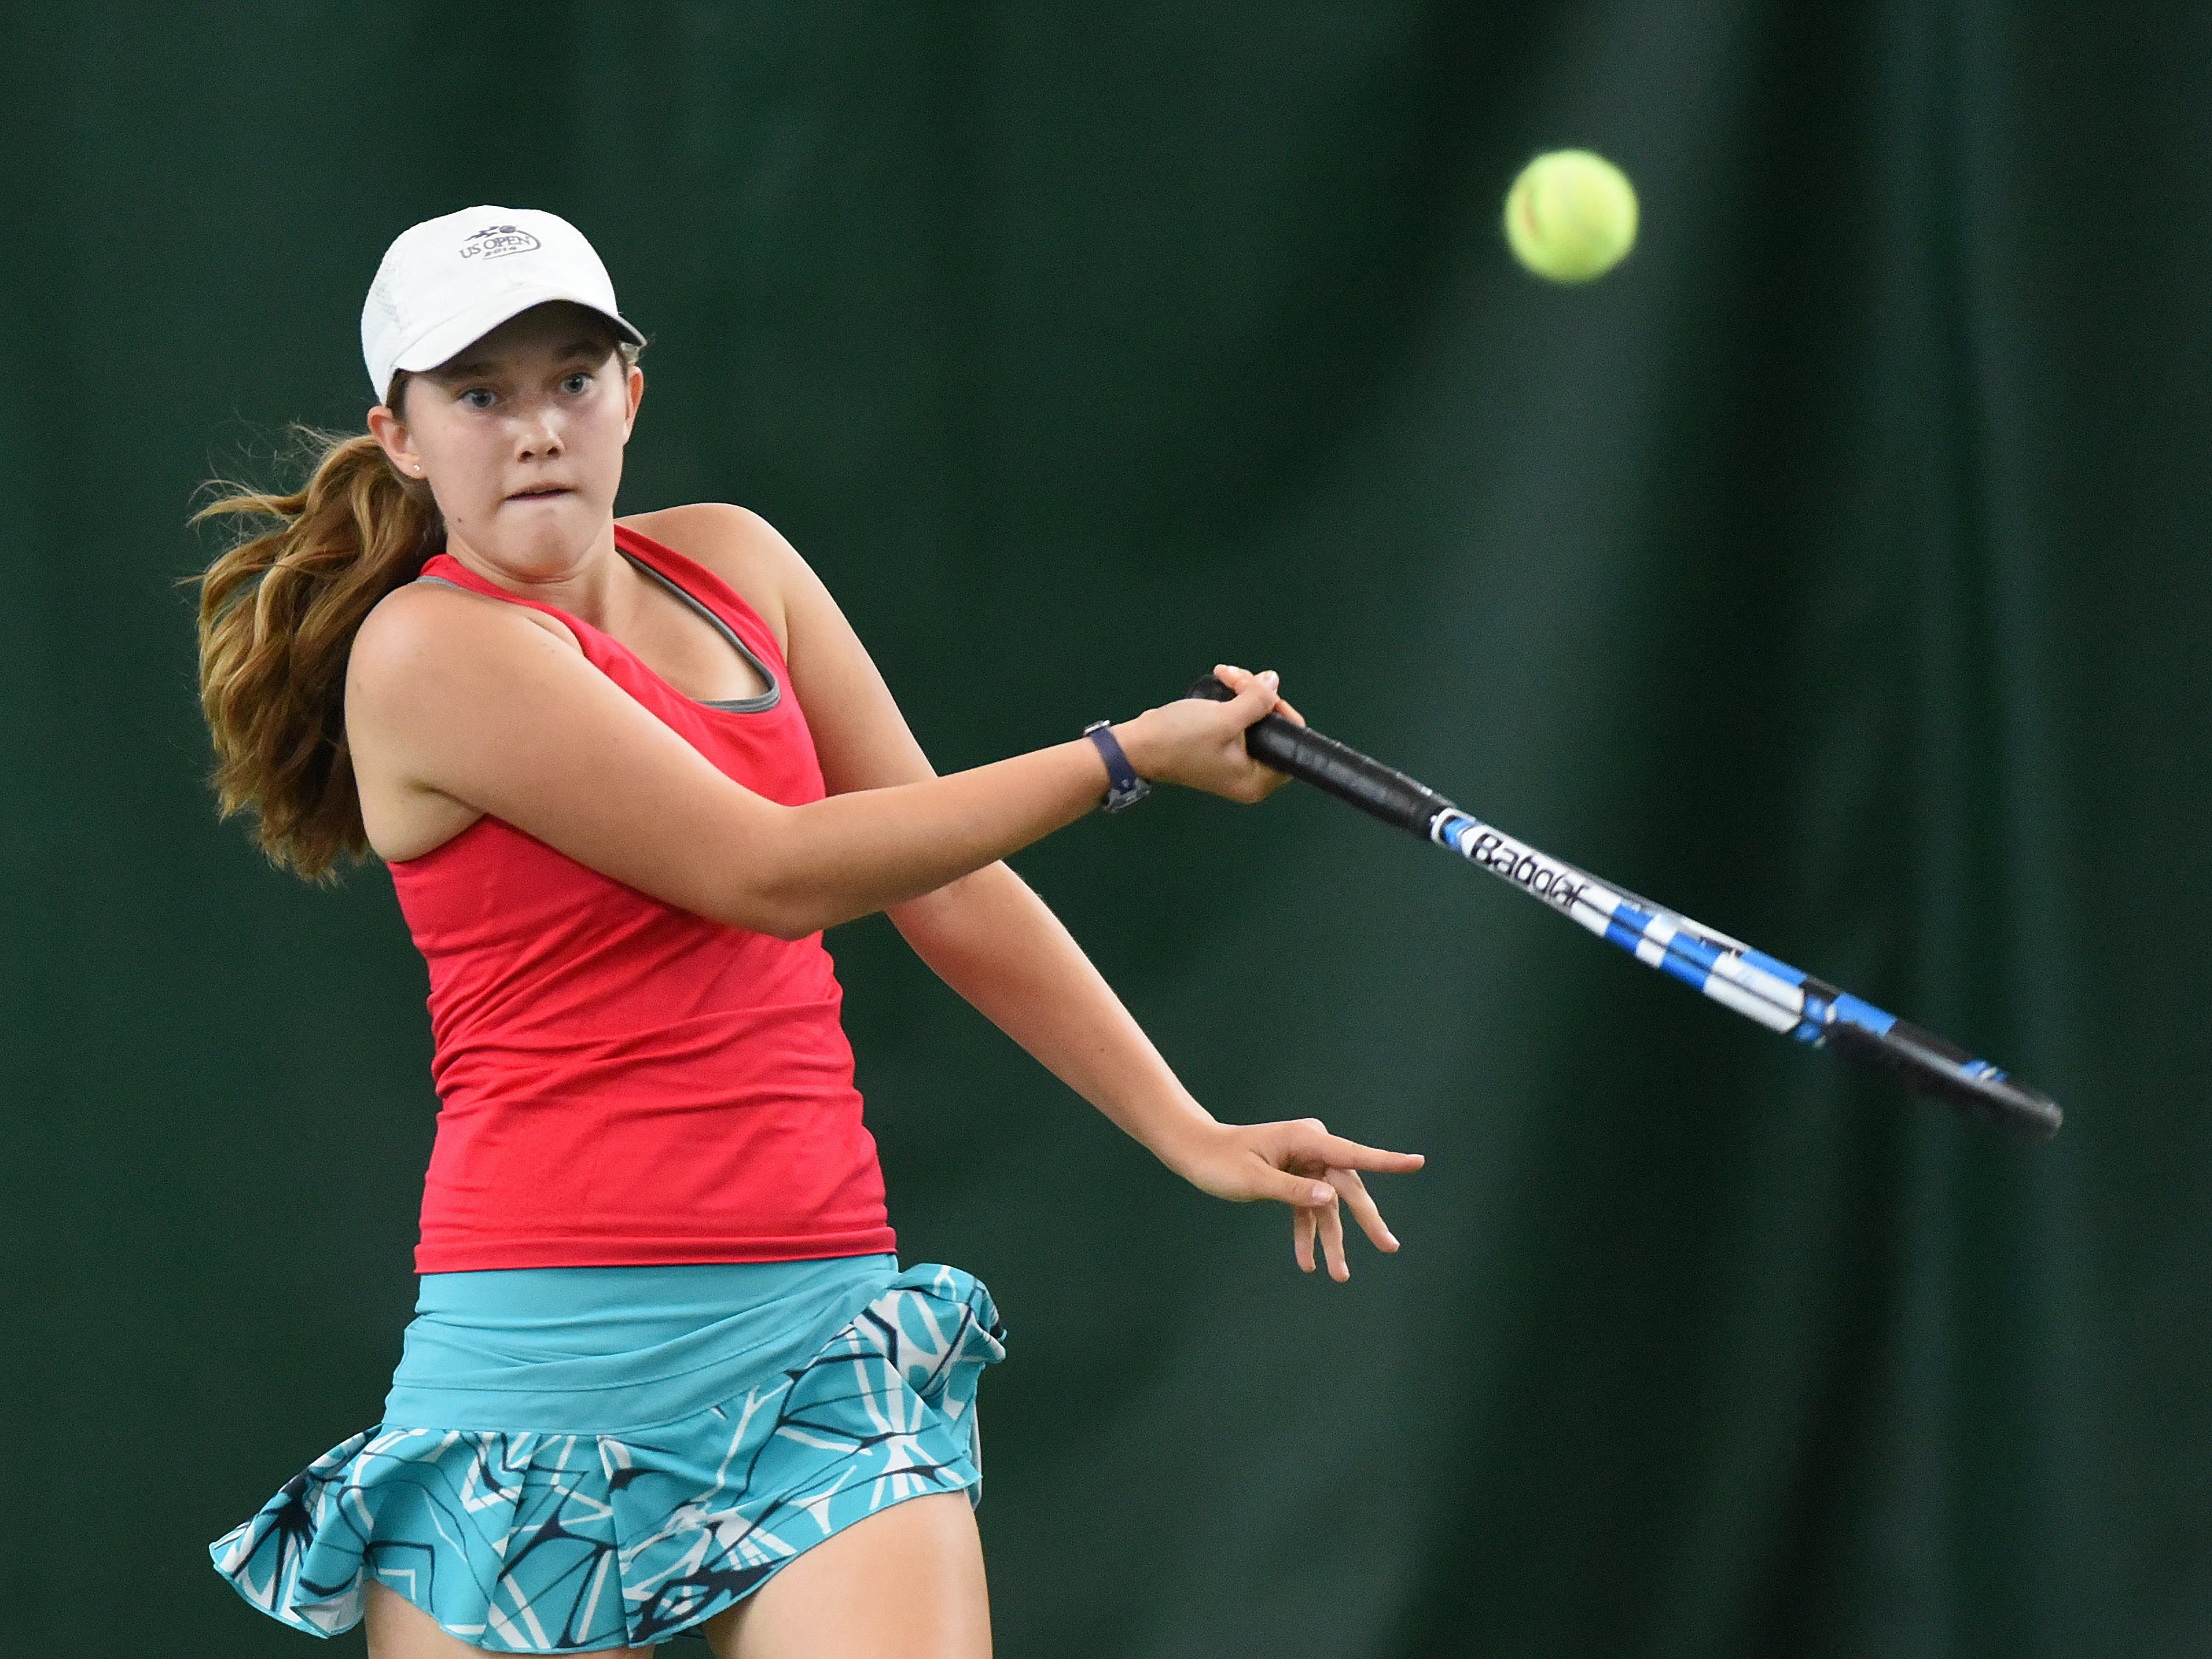 South Salem's Jillian Studer plays in a singles match during the second day of the Greater Valley Conference tennis meet on Friday, May 15, 2015, at Salem Tennis and Swim Club.